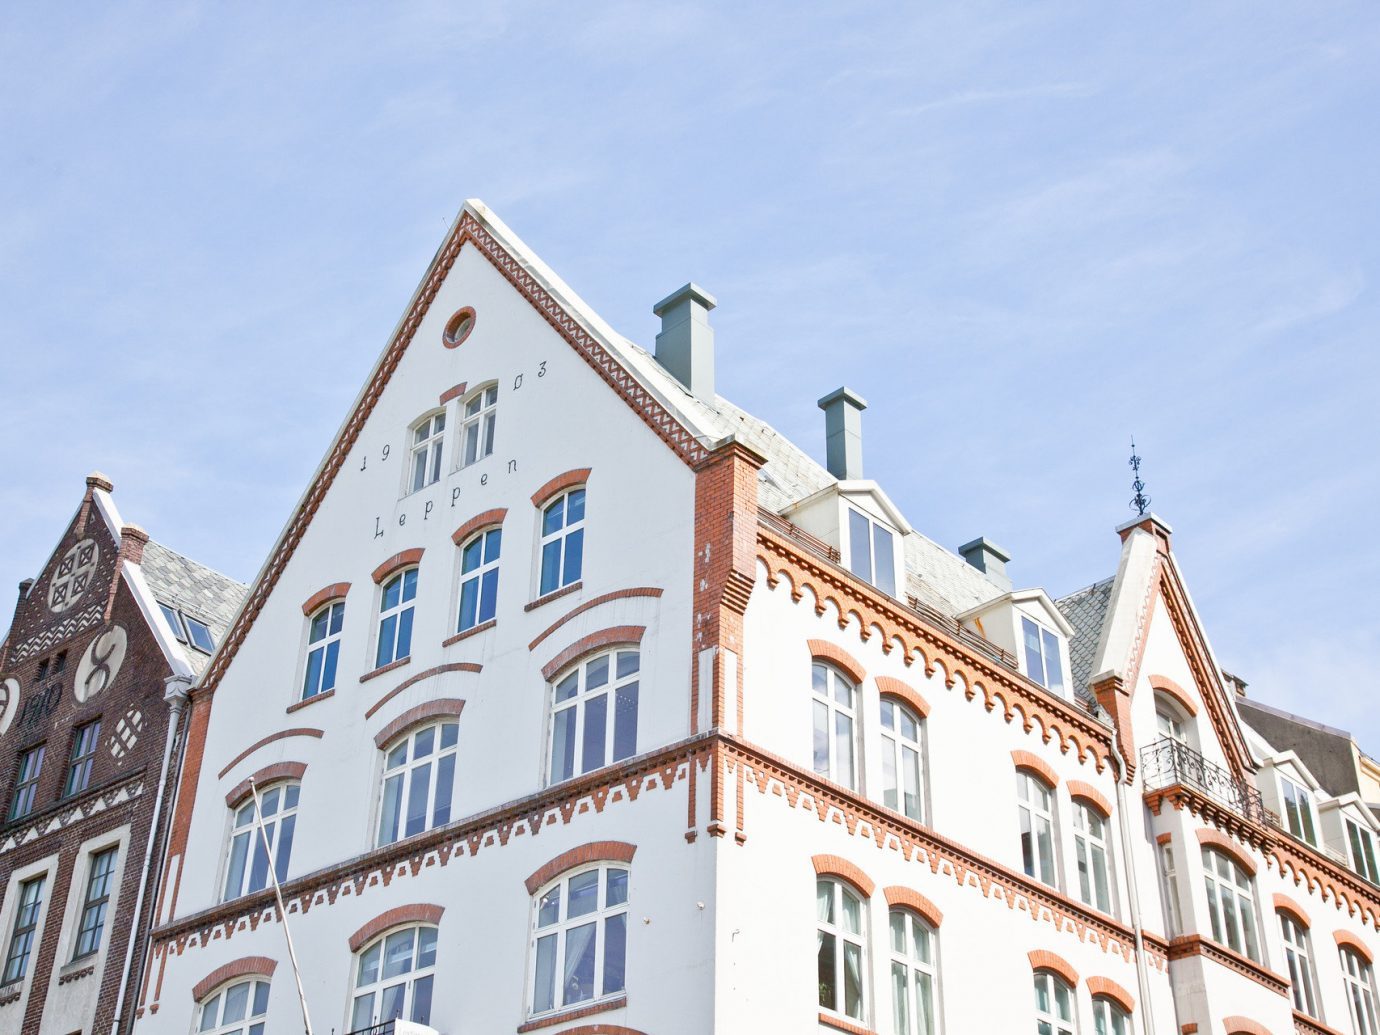 Architecture daylight detail europe rooftops Trip Ideas outdoor sky building Town landmark tourism facade tours government building roof